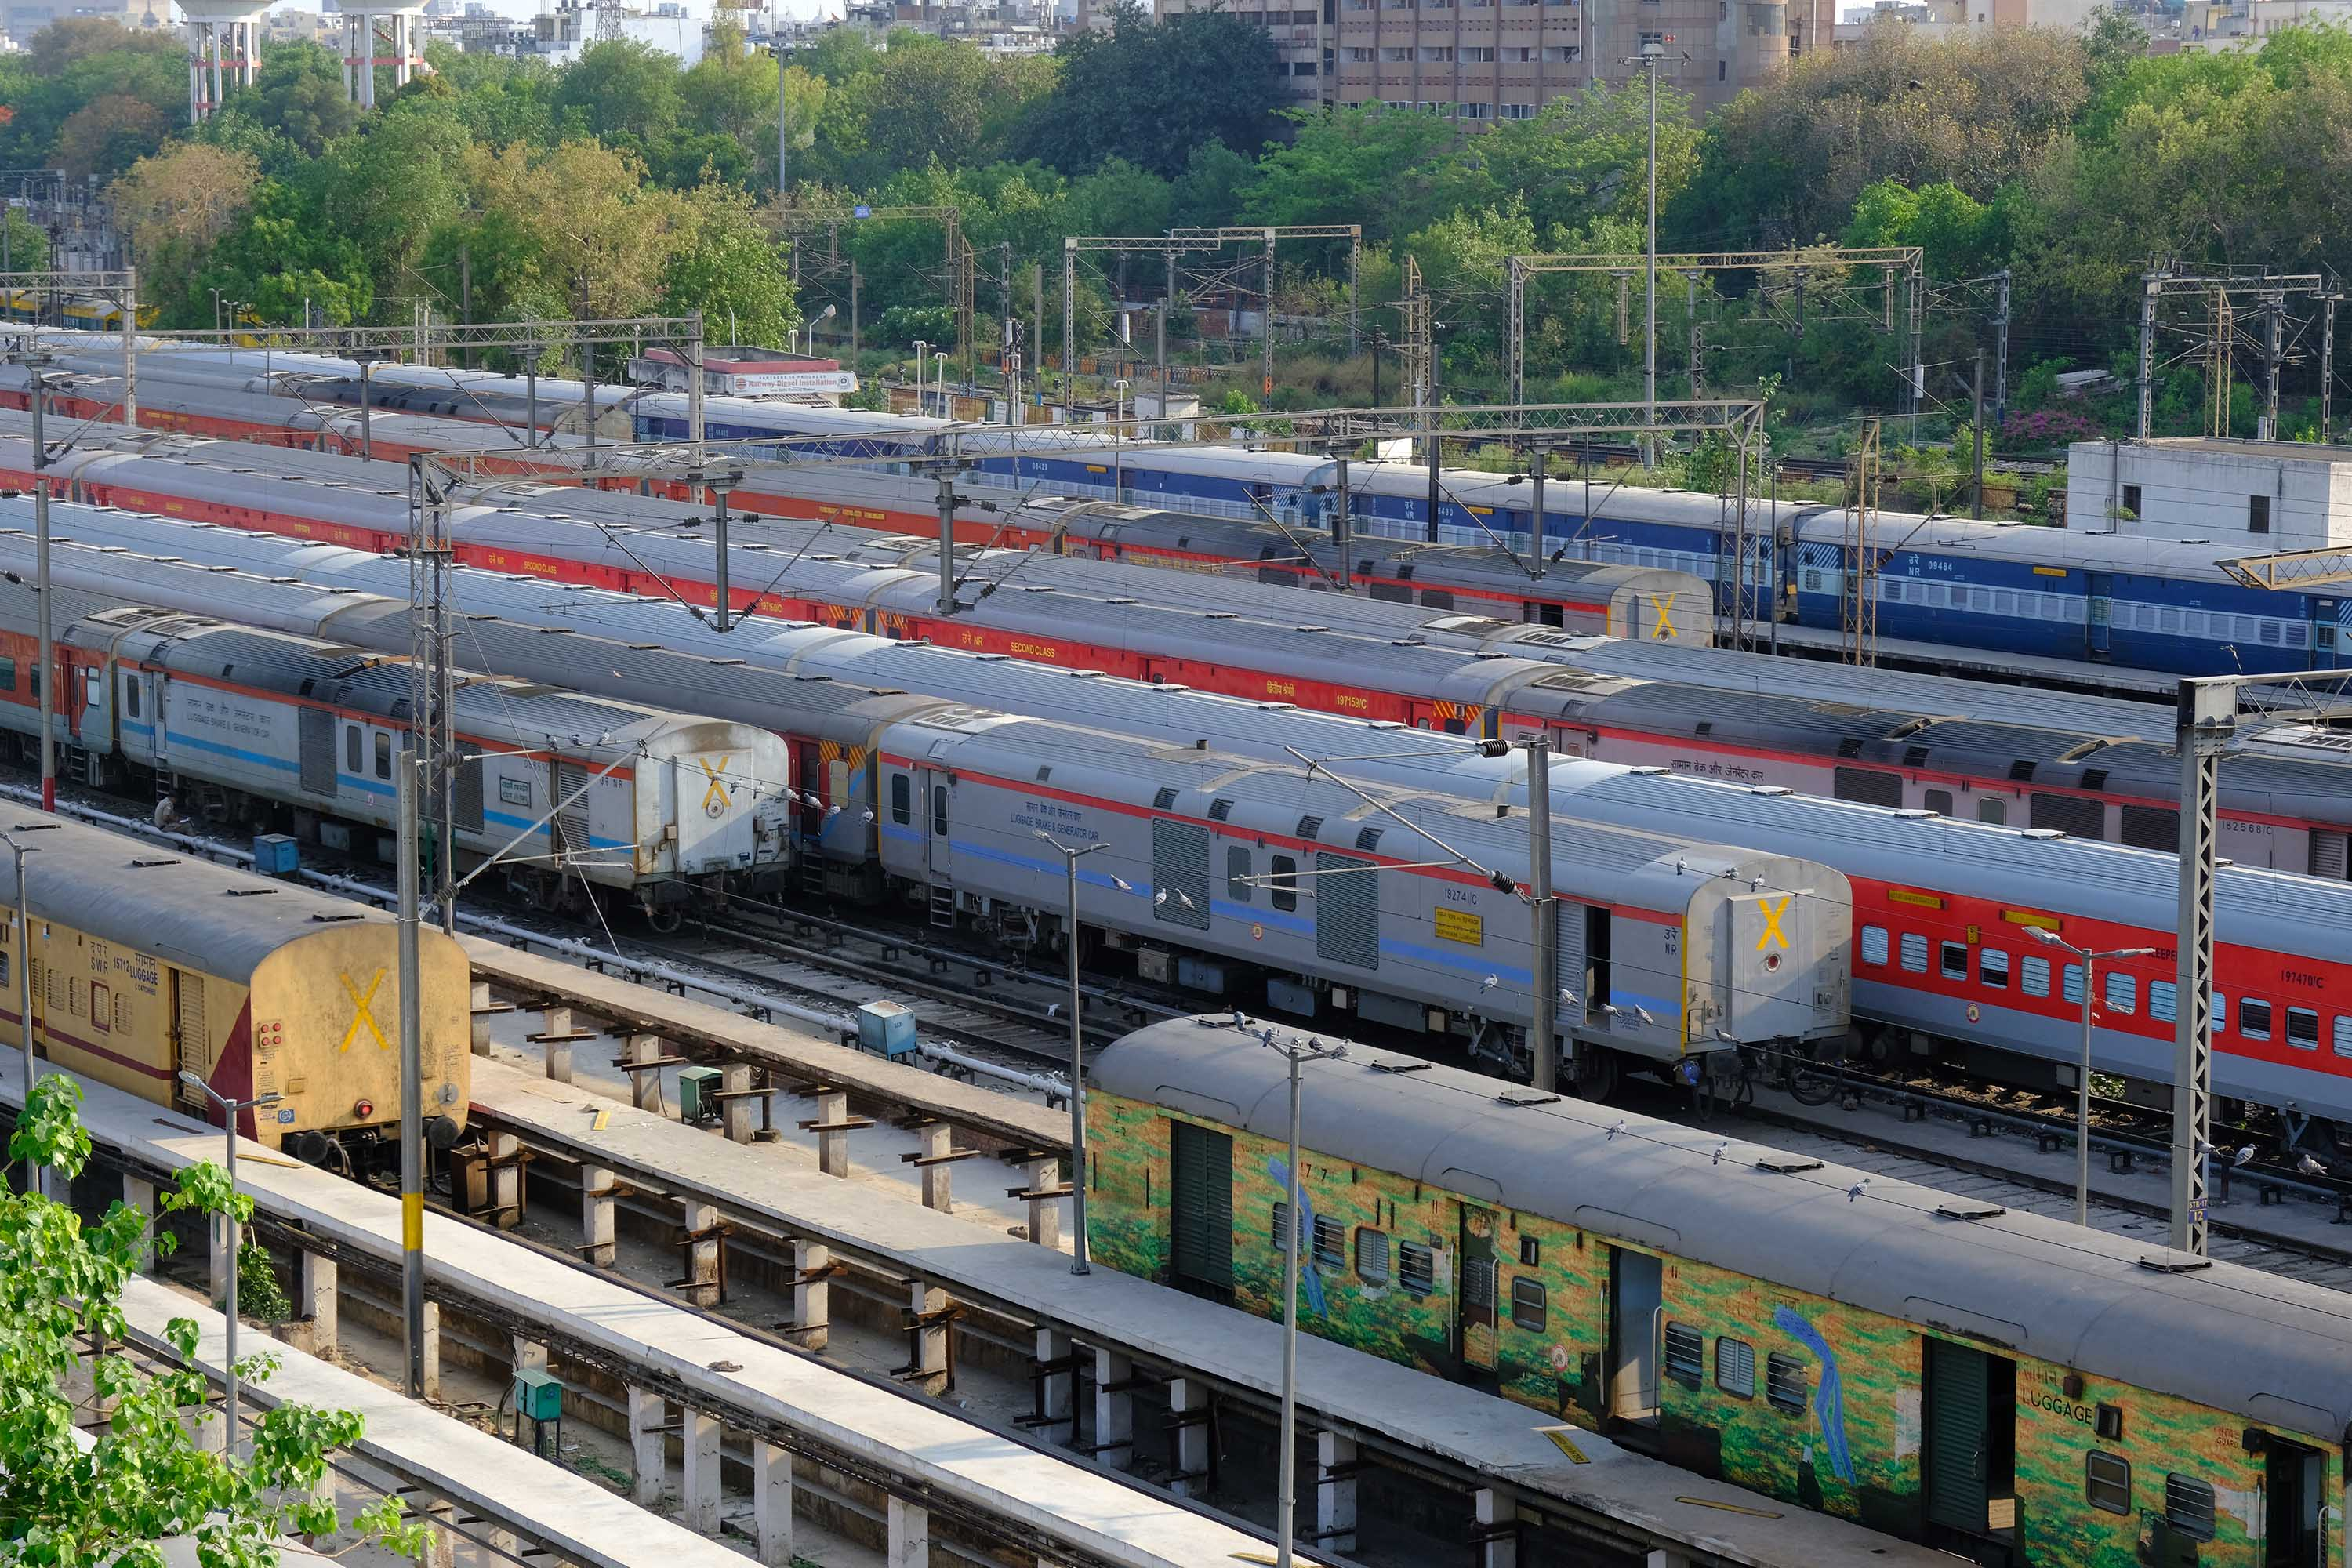 Trains sits idle at the New Delhi Junction railway station during lockdown in New Delhi, India, on Monday, April 27.